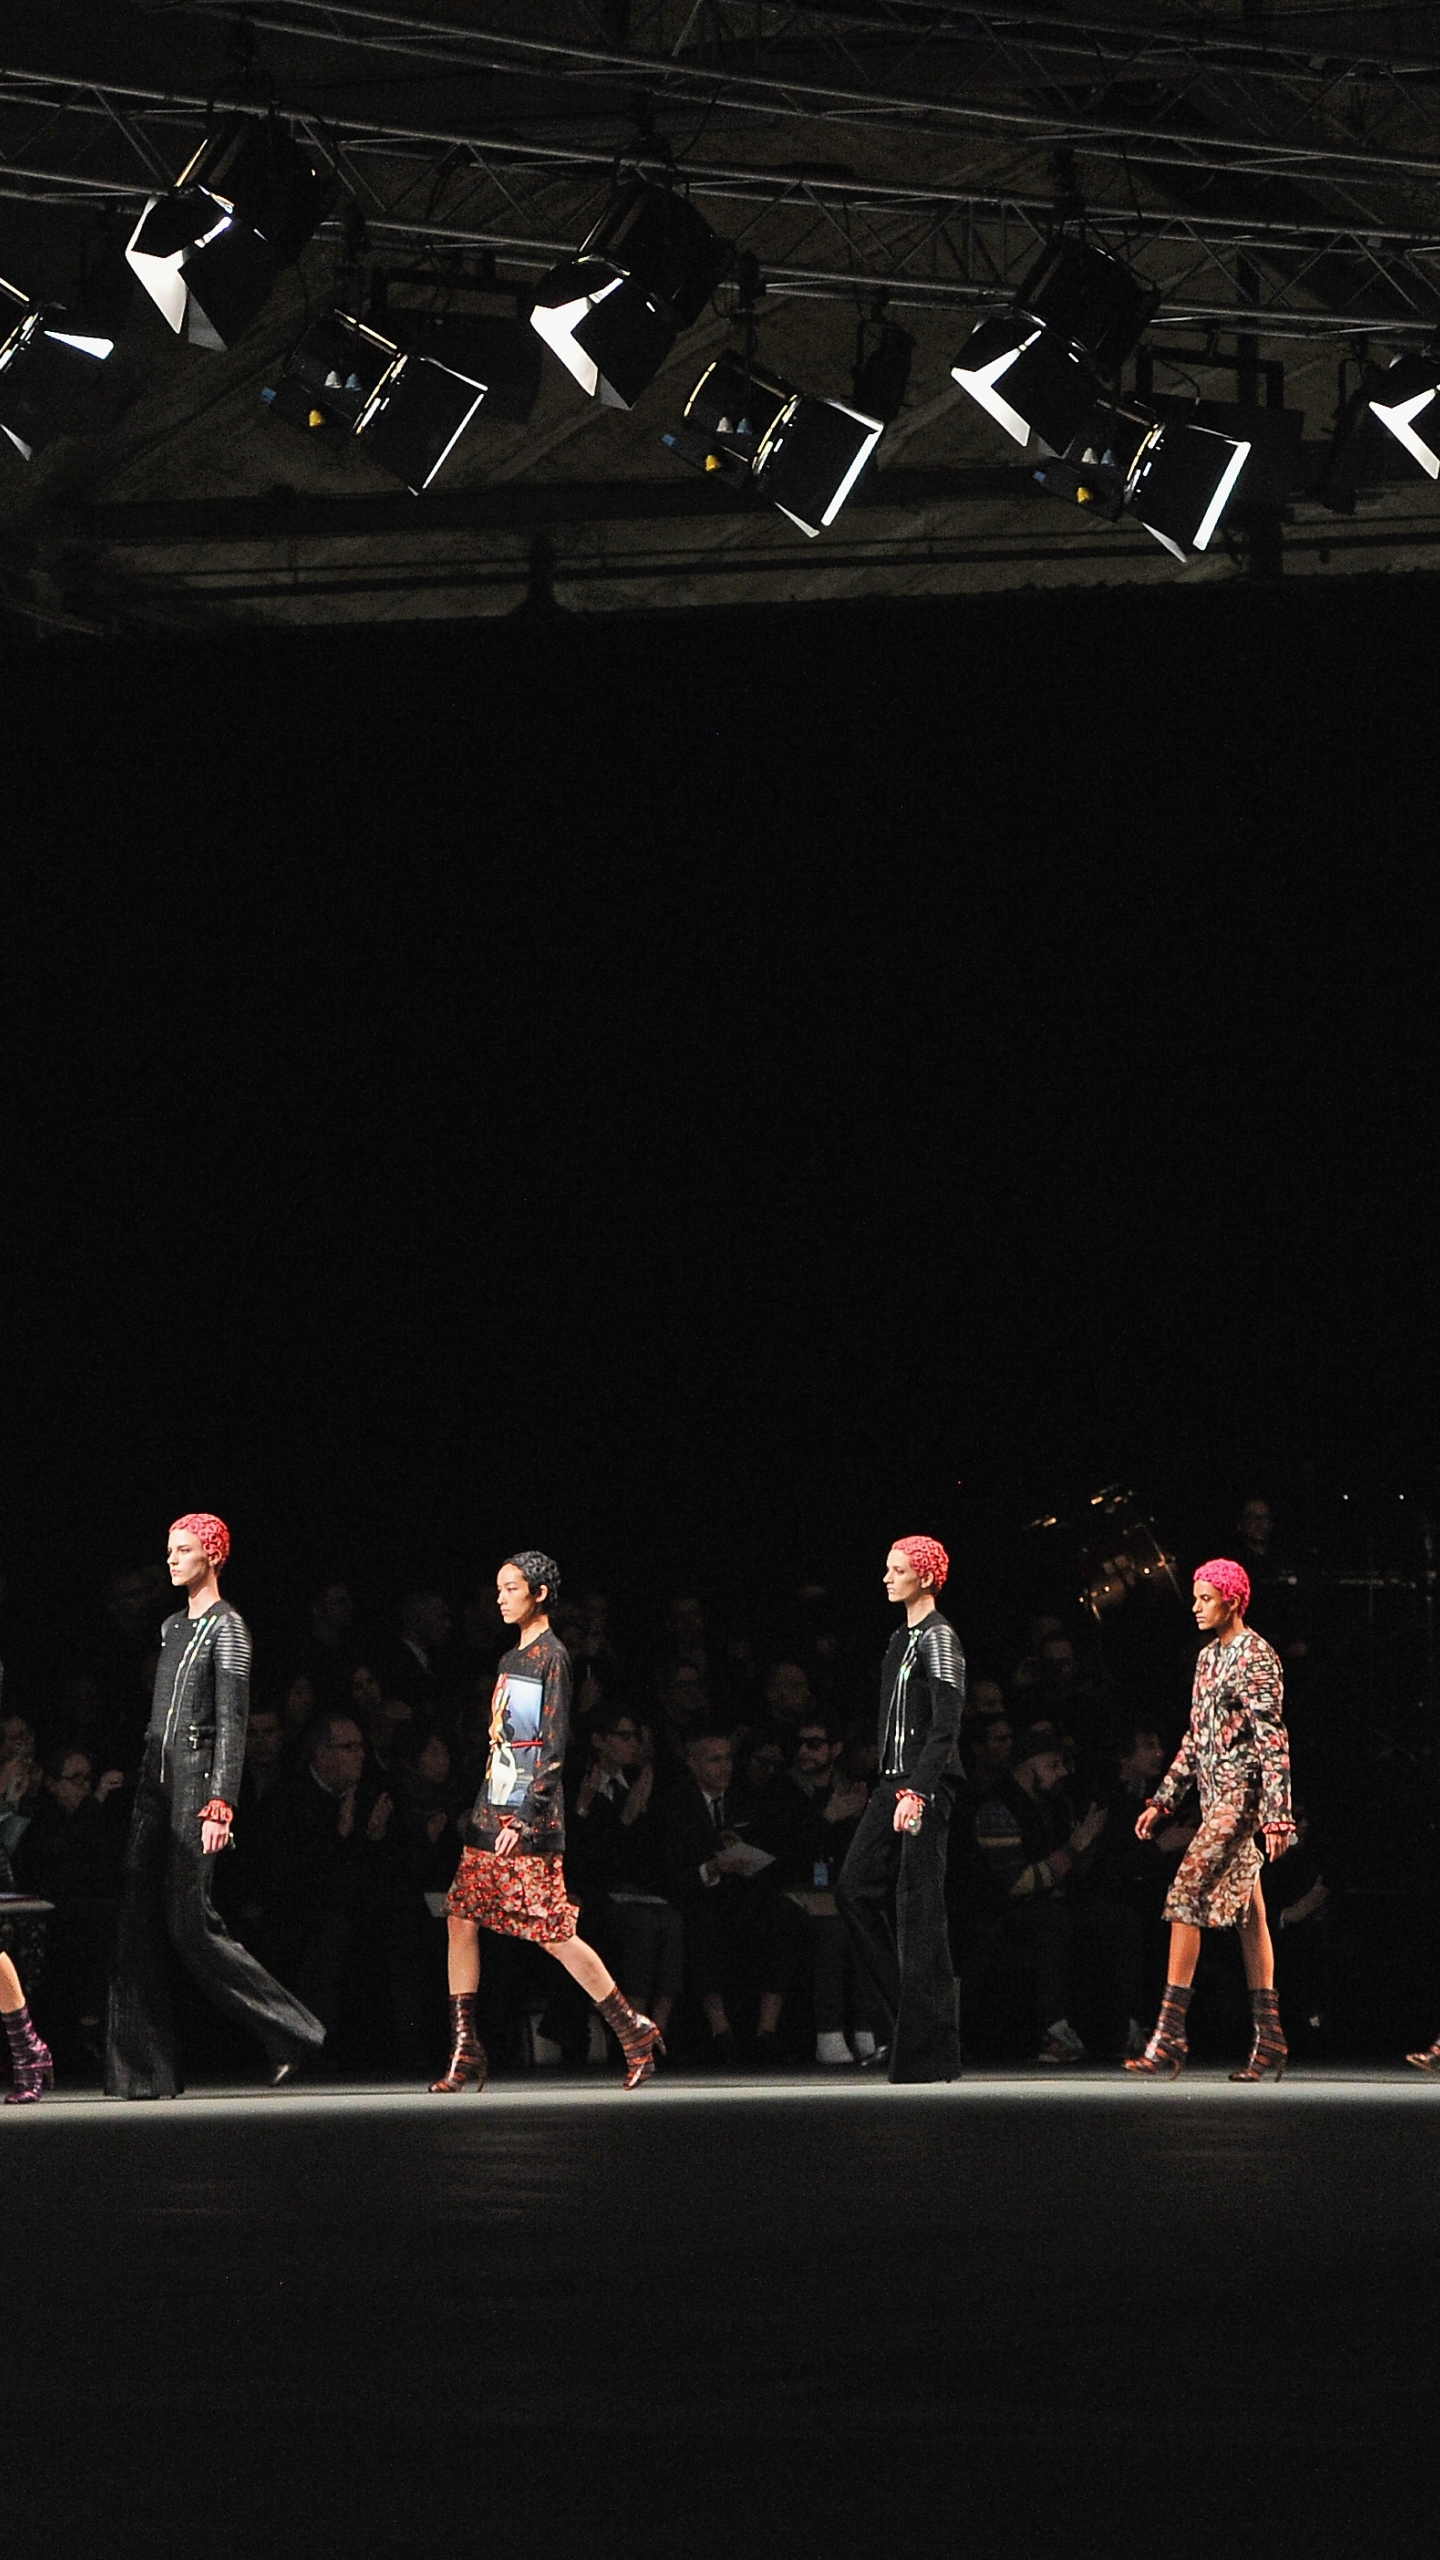 download Givenchy fashion show wallpapers and images 1440x2560